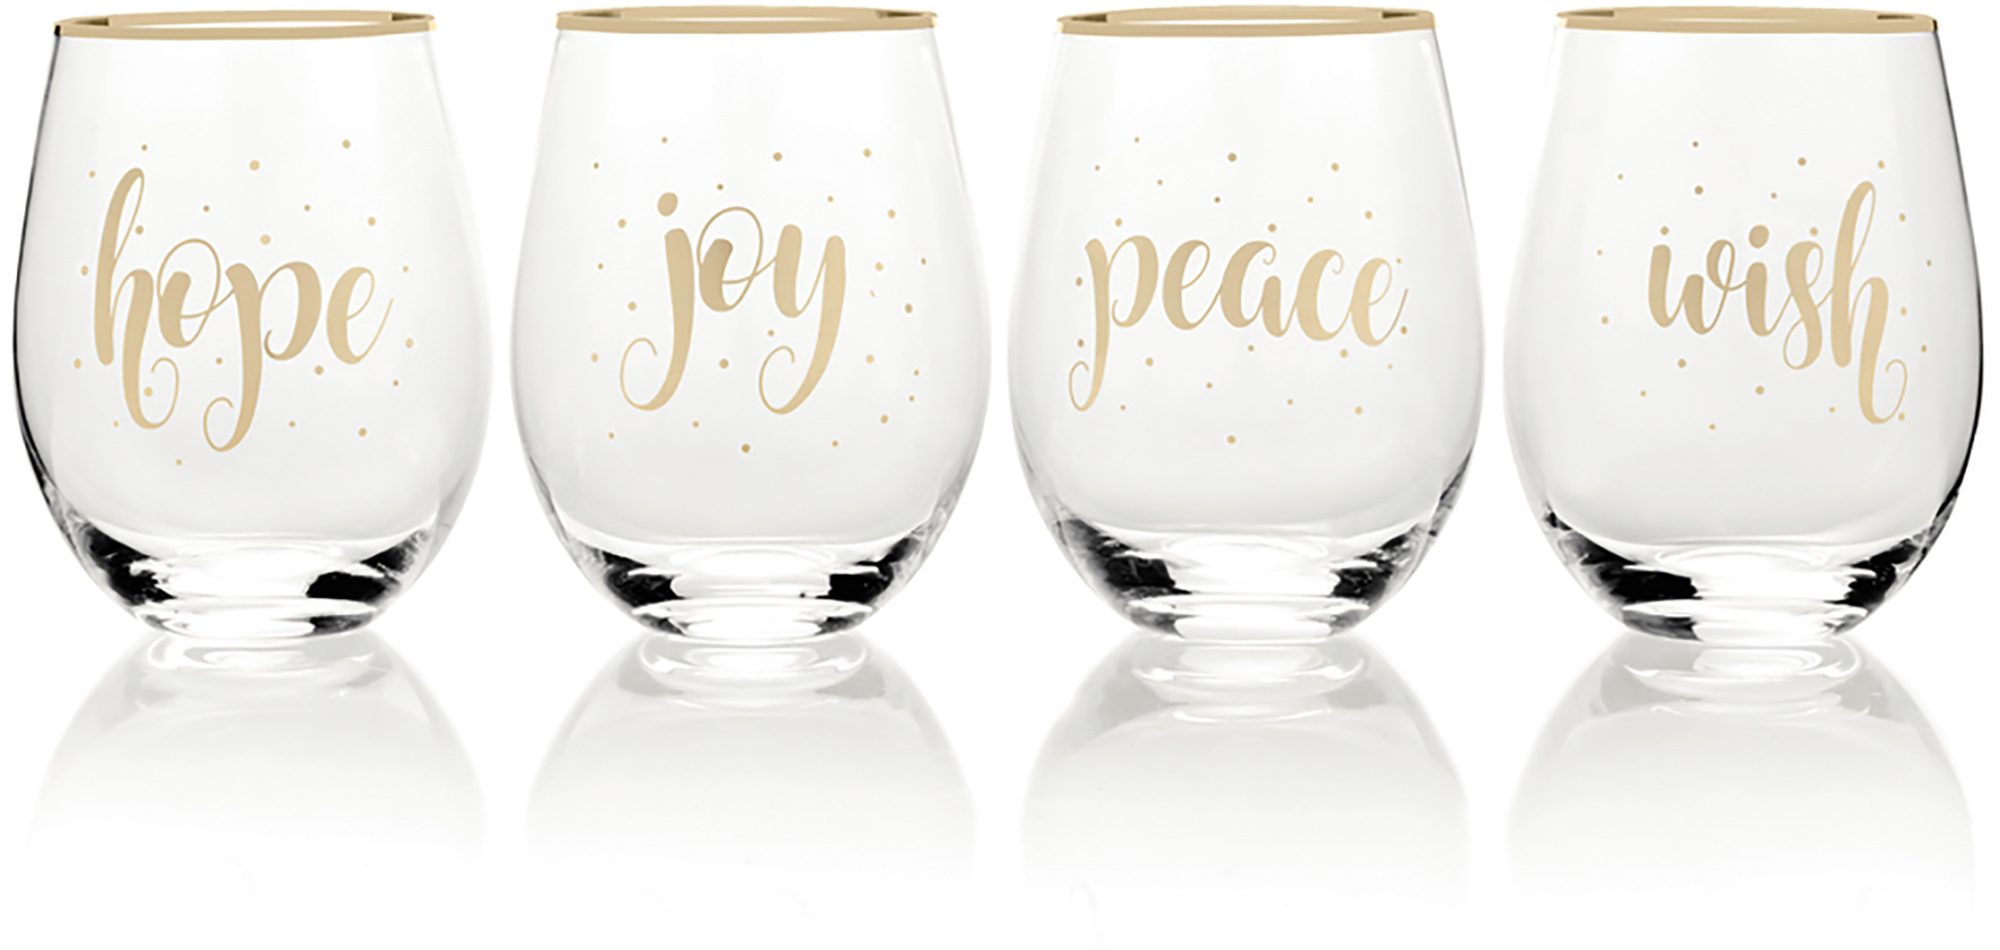 Mikasa Cheers Set Of 4 Stemless Wine Wish, Joy, Peace And Hope Wine Glasses